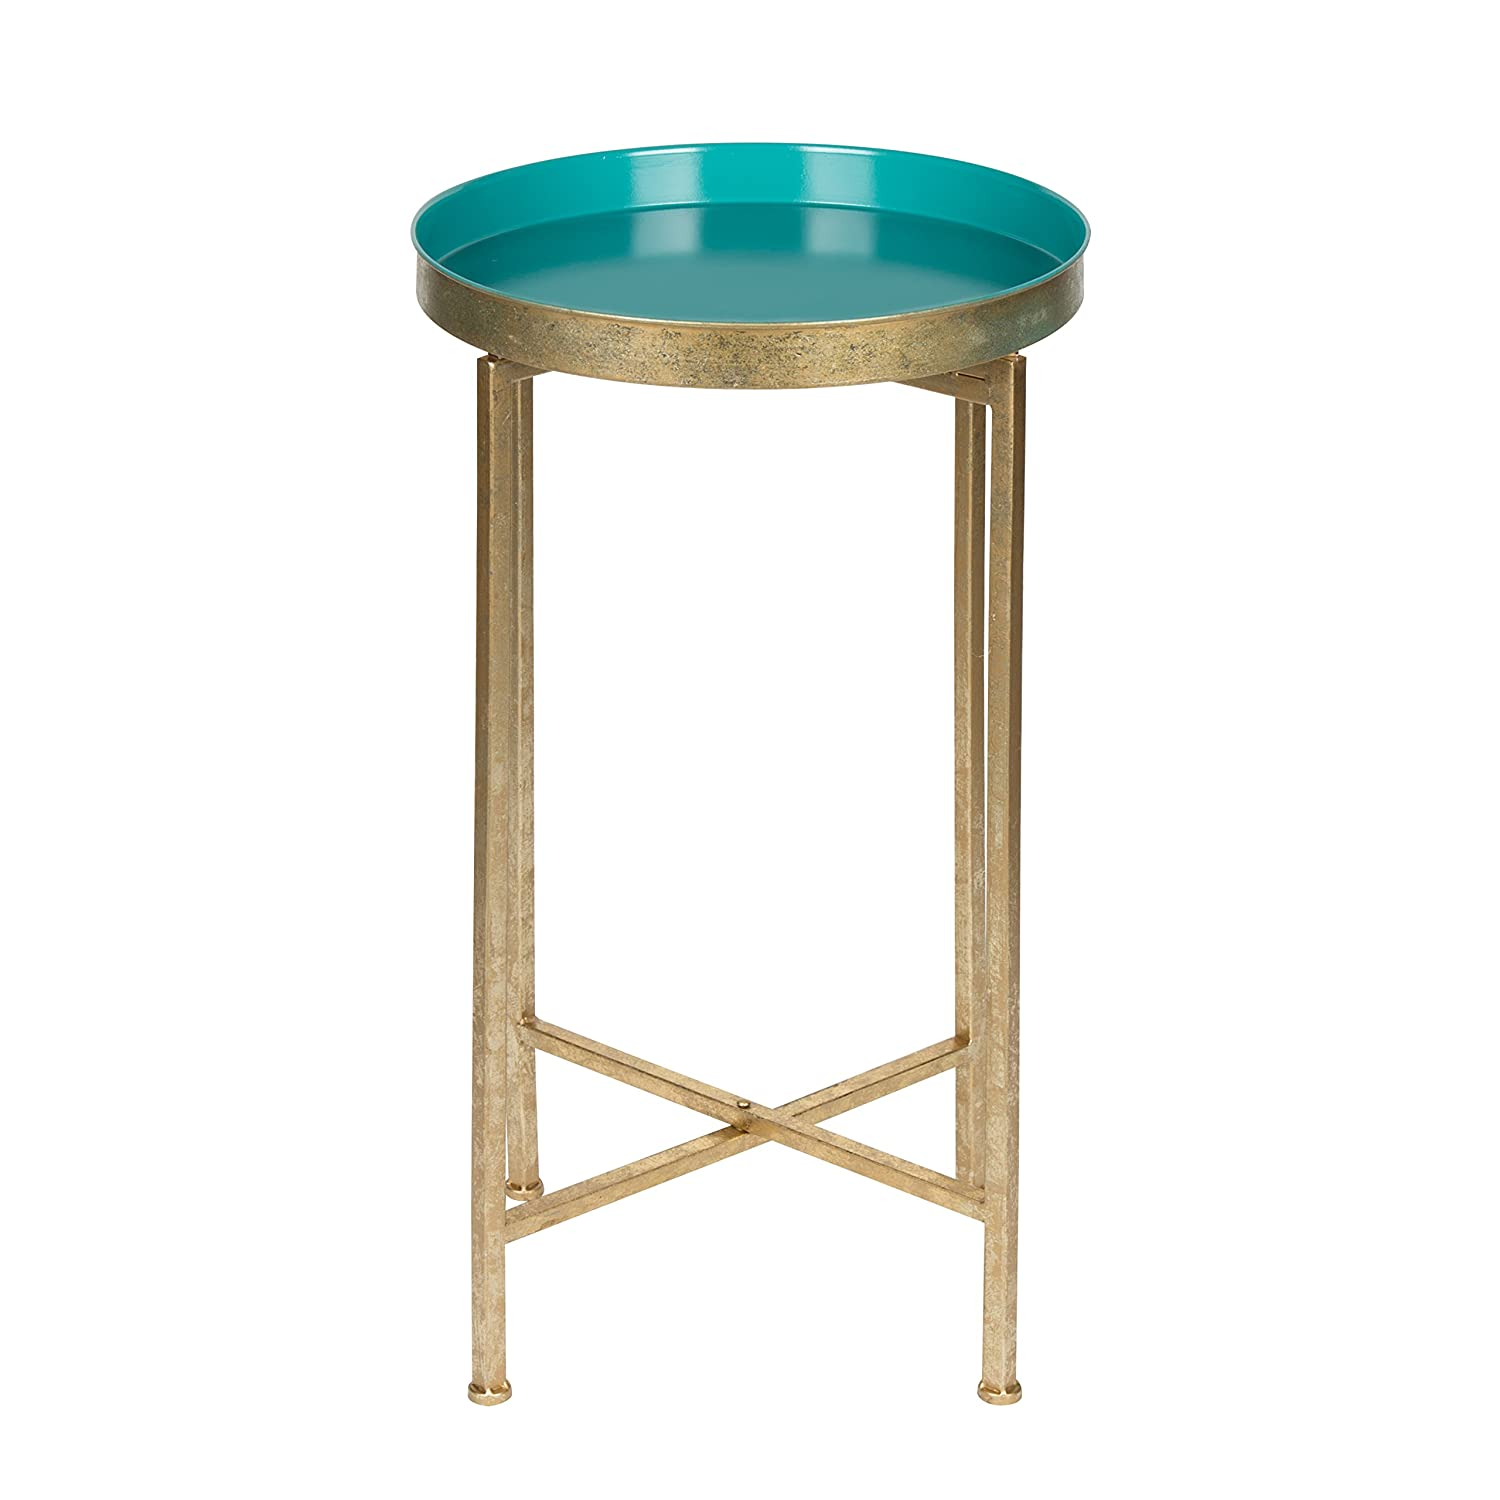 Kate and Laurel 211073 Celia Round Metal Foldable Tray Accent Table, 14x14x25.75, Gold/Teal